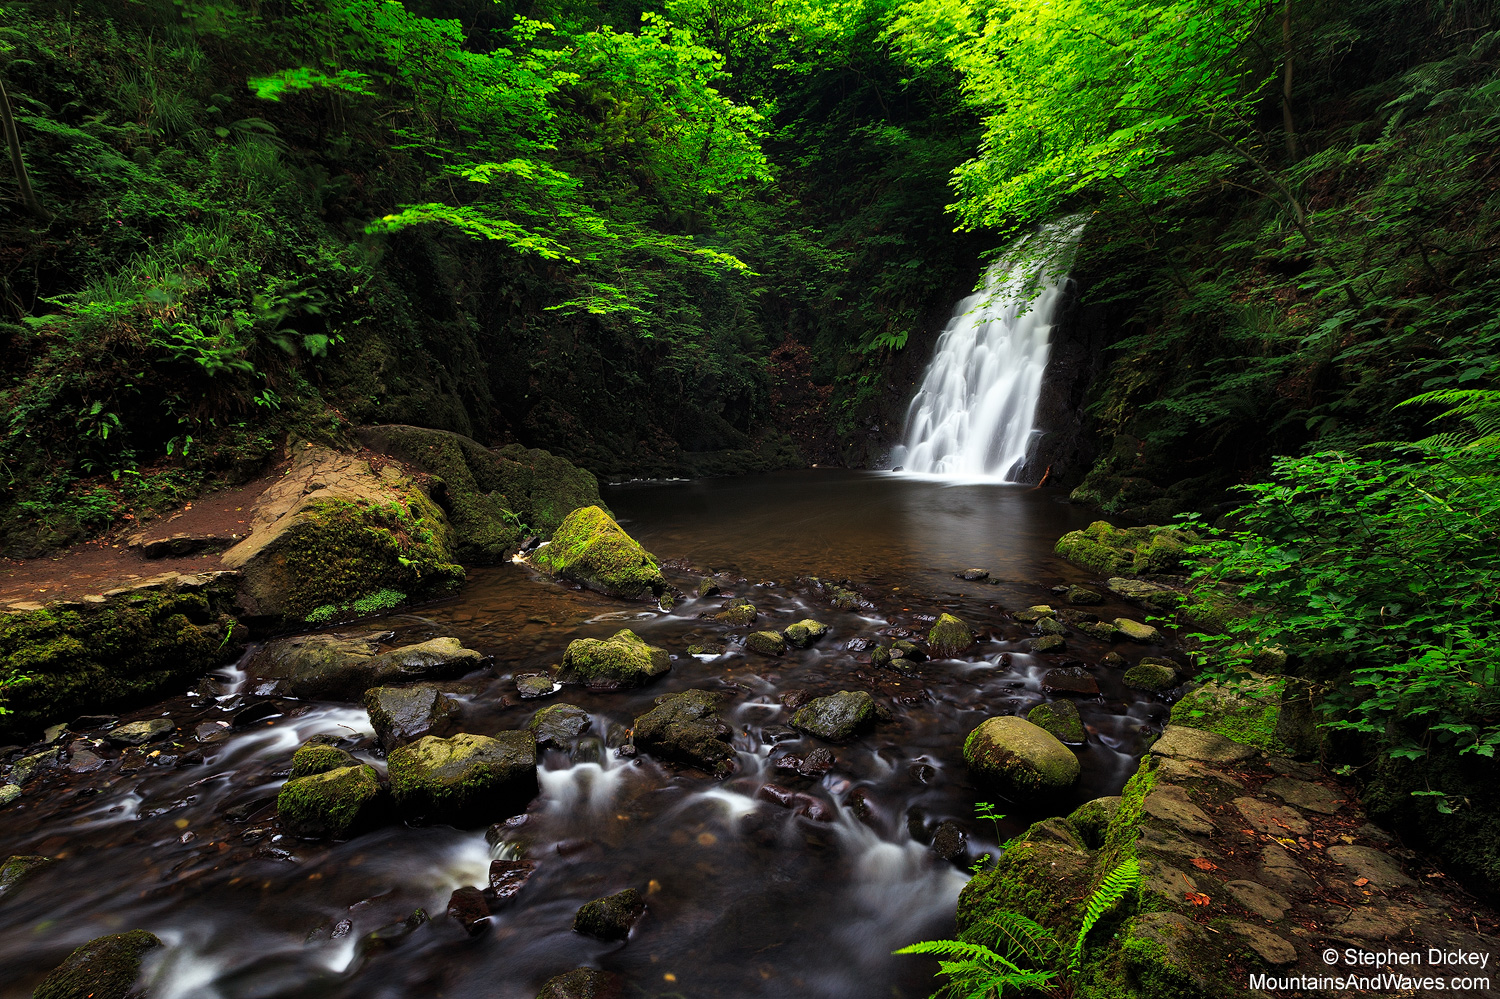 Glenariff Waterfall, County Antrim, Northern Ireland